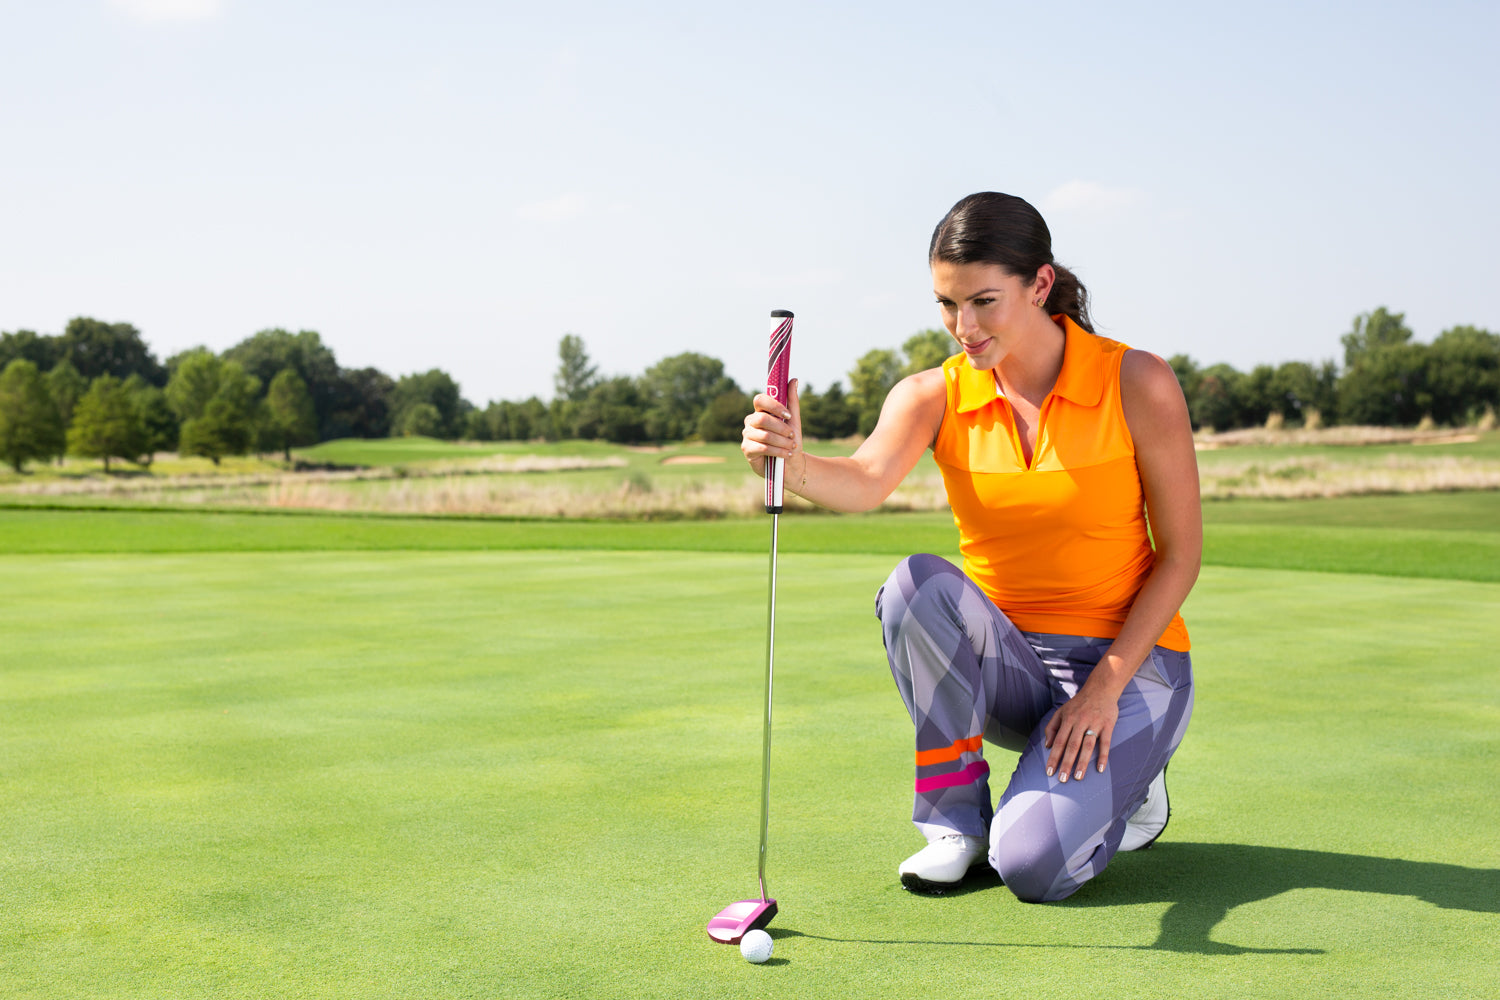 Woman on golf course studying putt